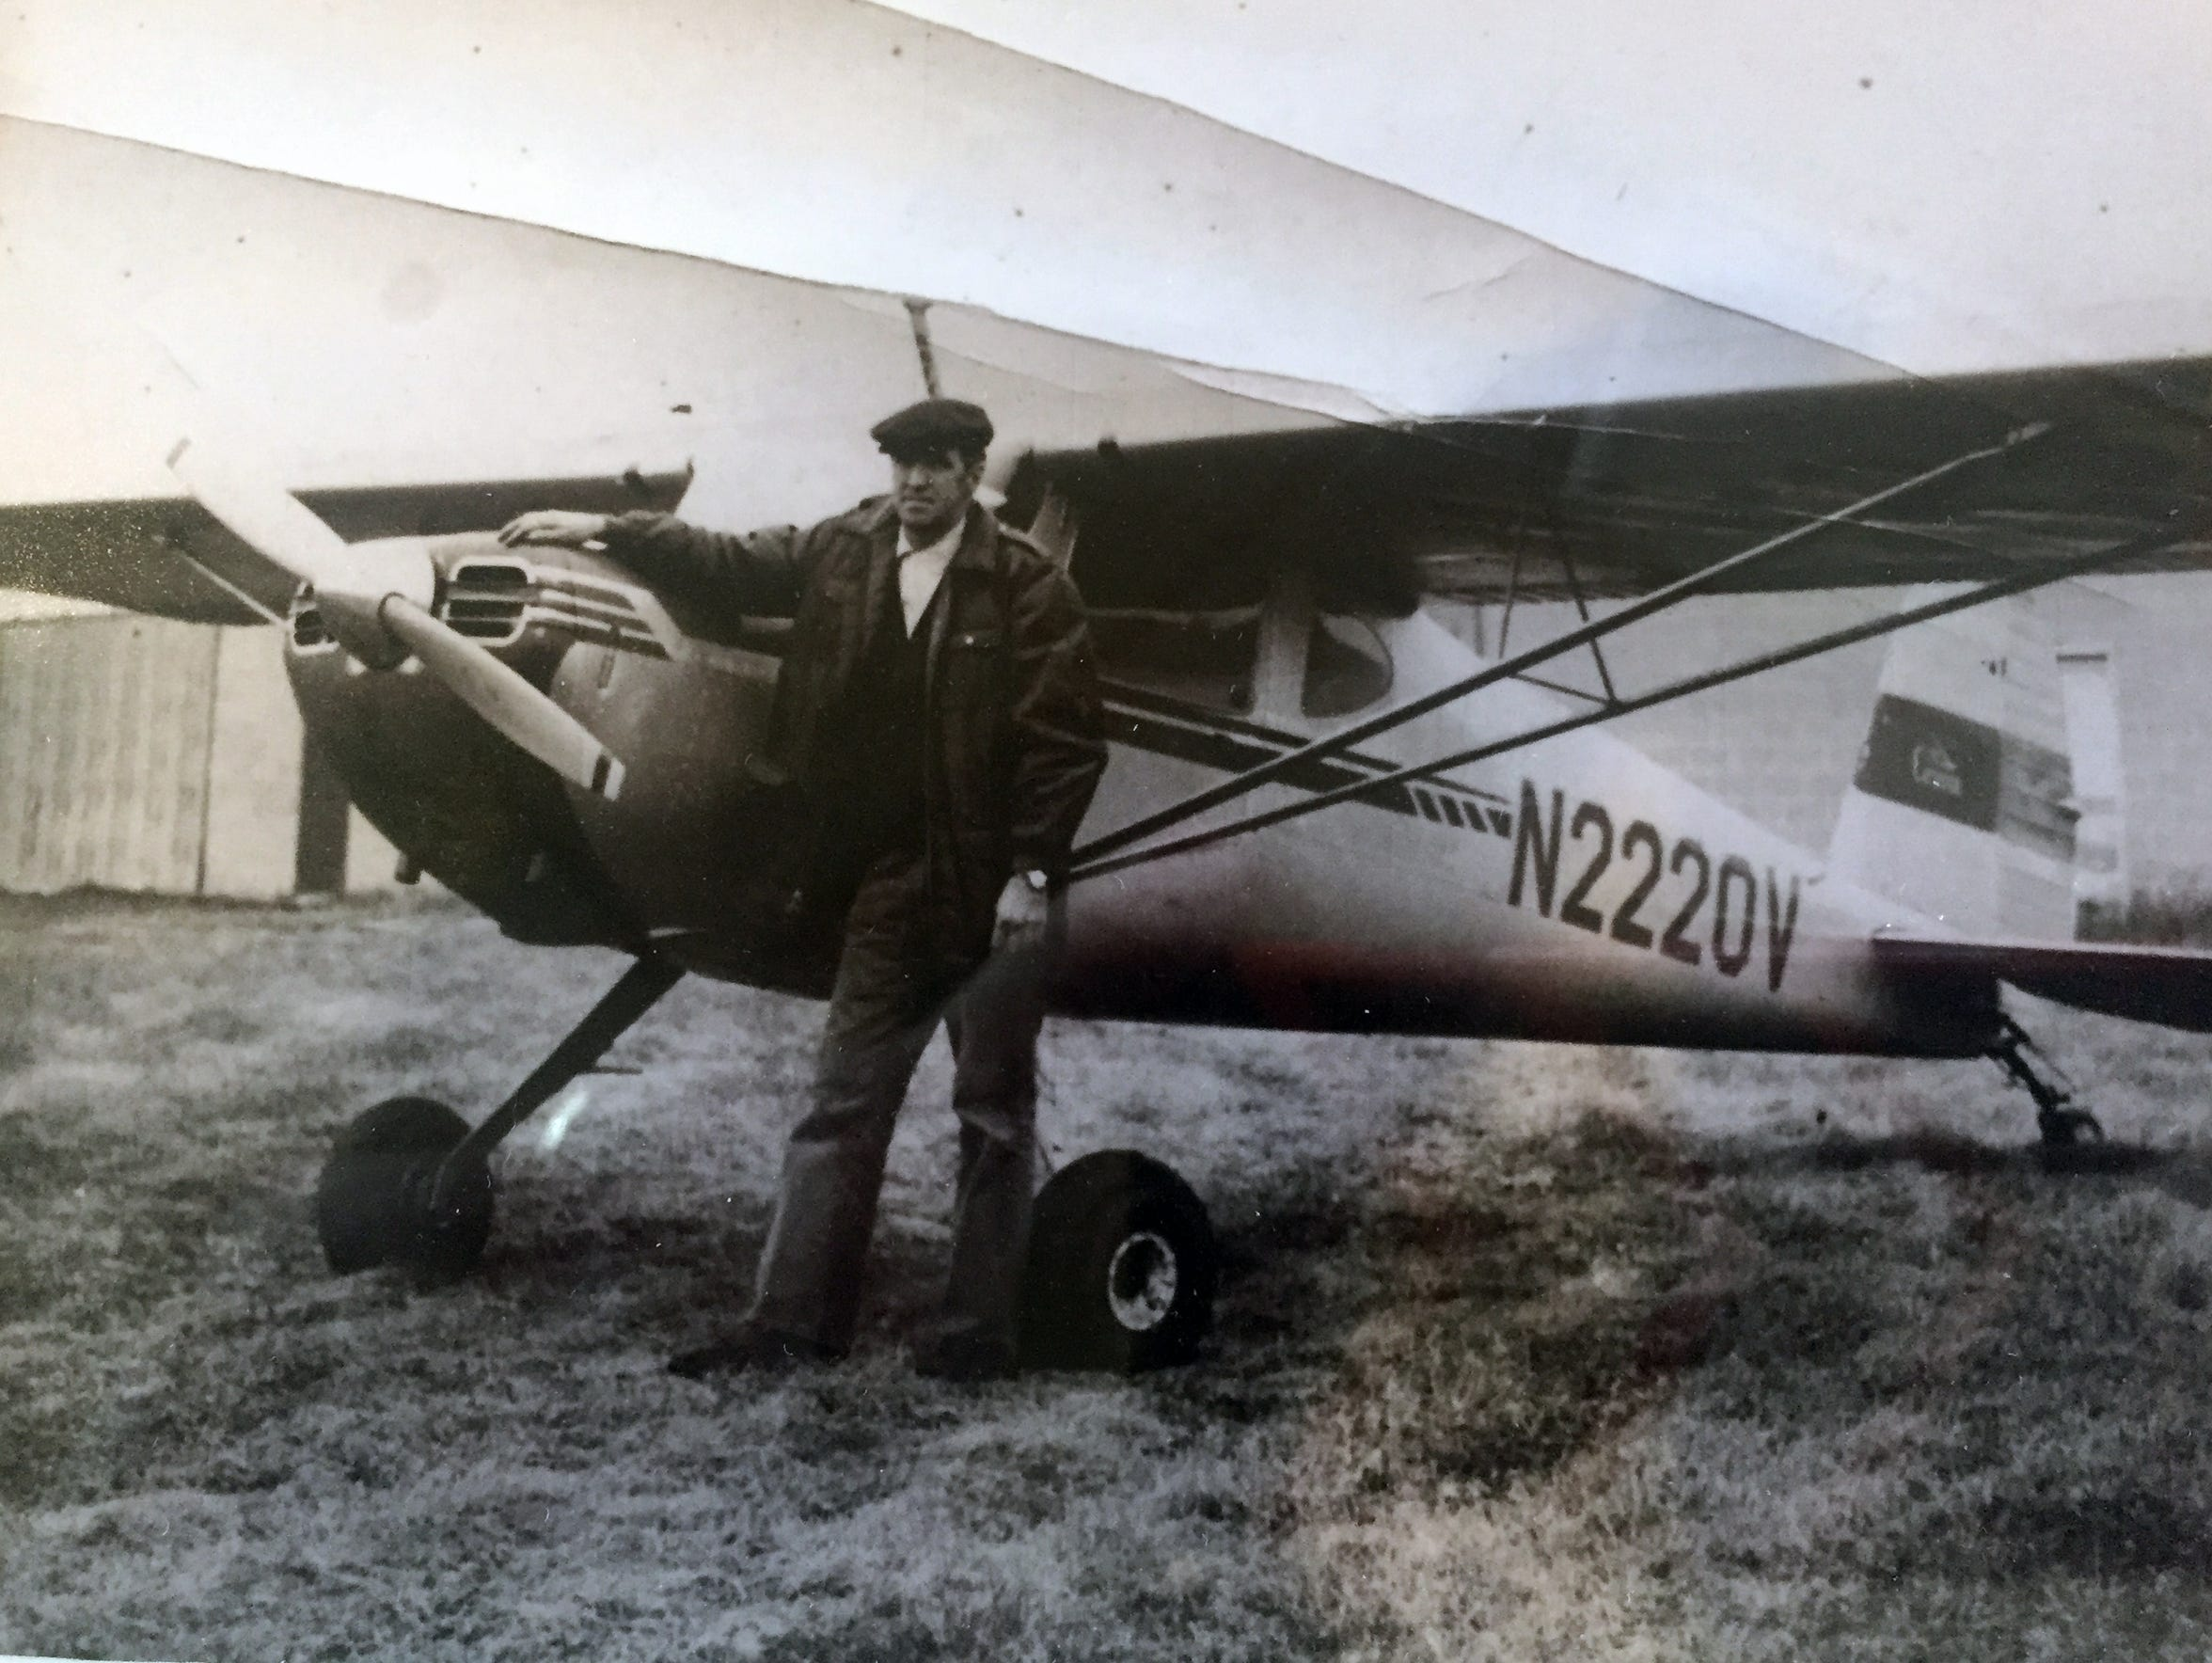 Richard Jerow, who flew over Lambeau Field on the day of the Ice Bowl Dec. 31, 1967, poses with his Cessna 140 plane.